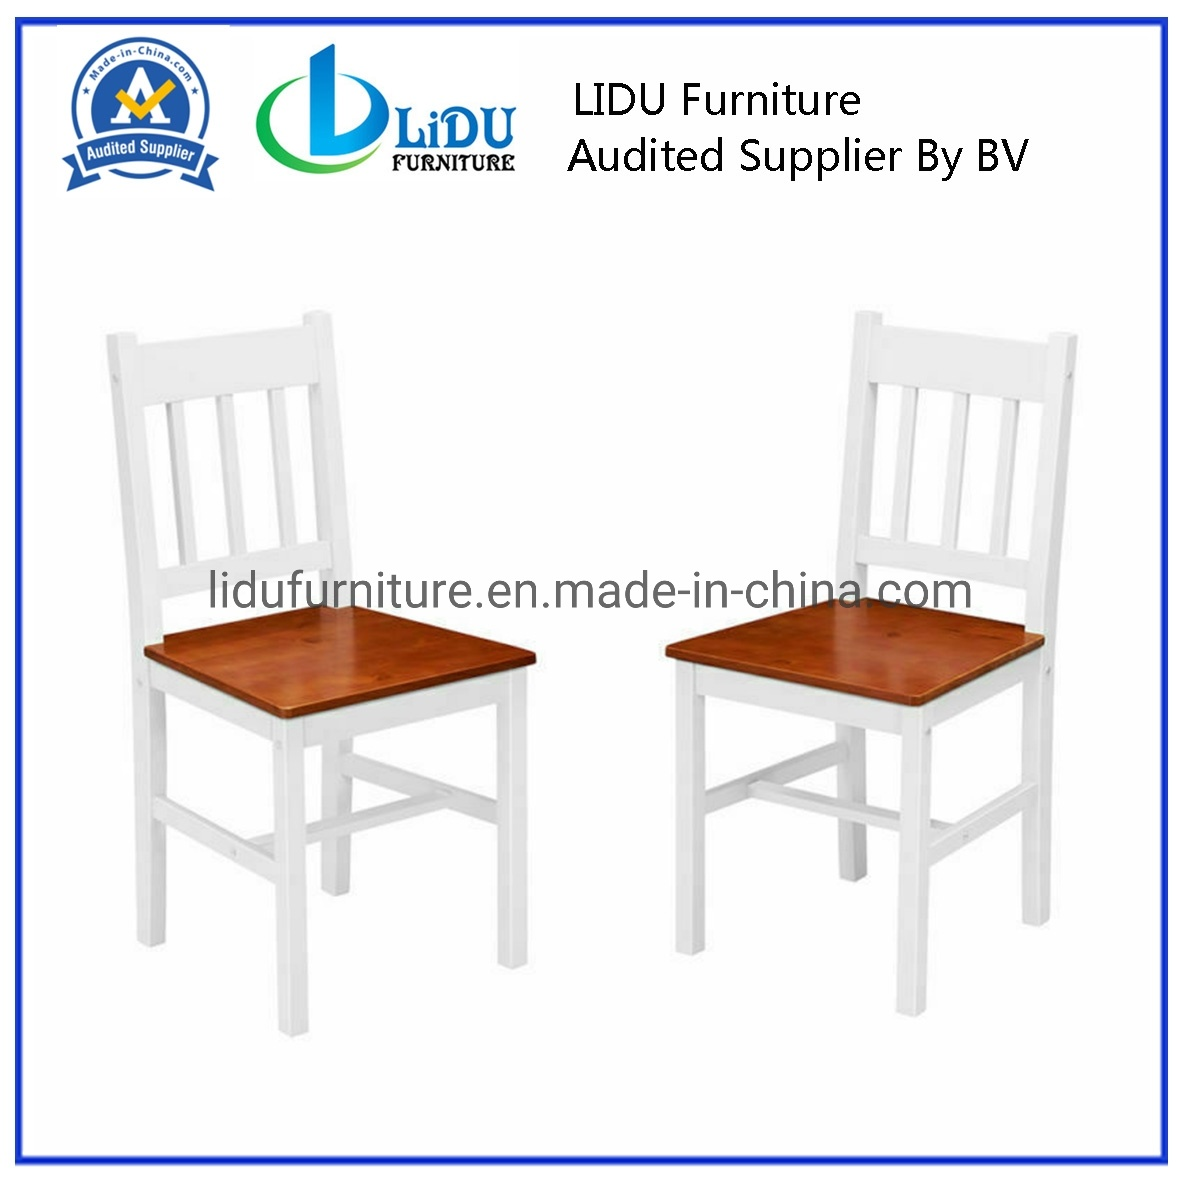 Hot Item New Design Restaurant Furniture Wooden Cheap Tables And Chairs Restaurant Bar Cafe Furniture